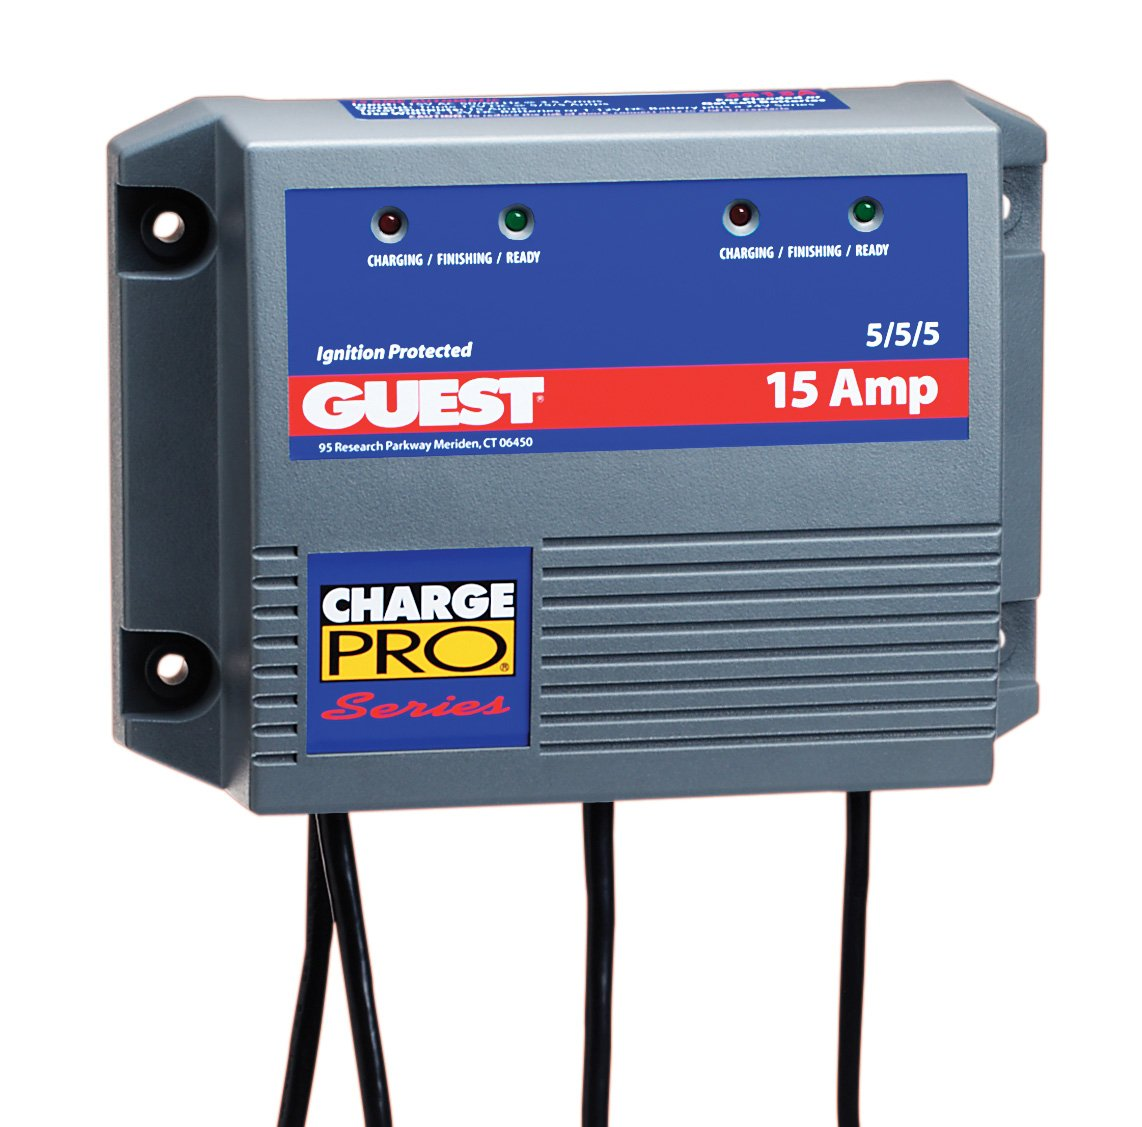 hight resolution of 15 amp triple output charge pro battery charger 15a 5 5 5 12 24 24 volt trolling motor diagram 3 bank charger wiring diagram